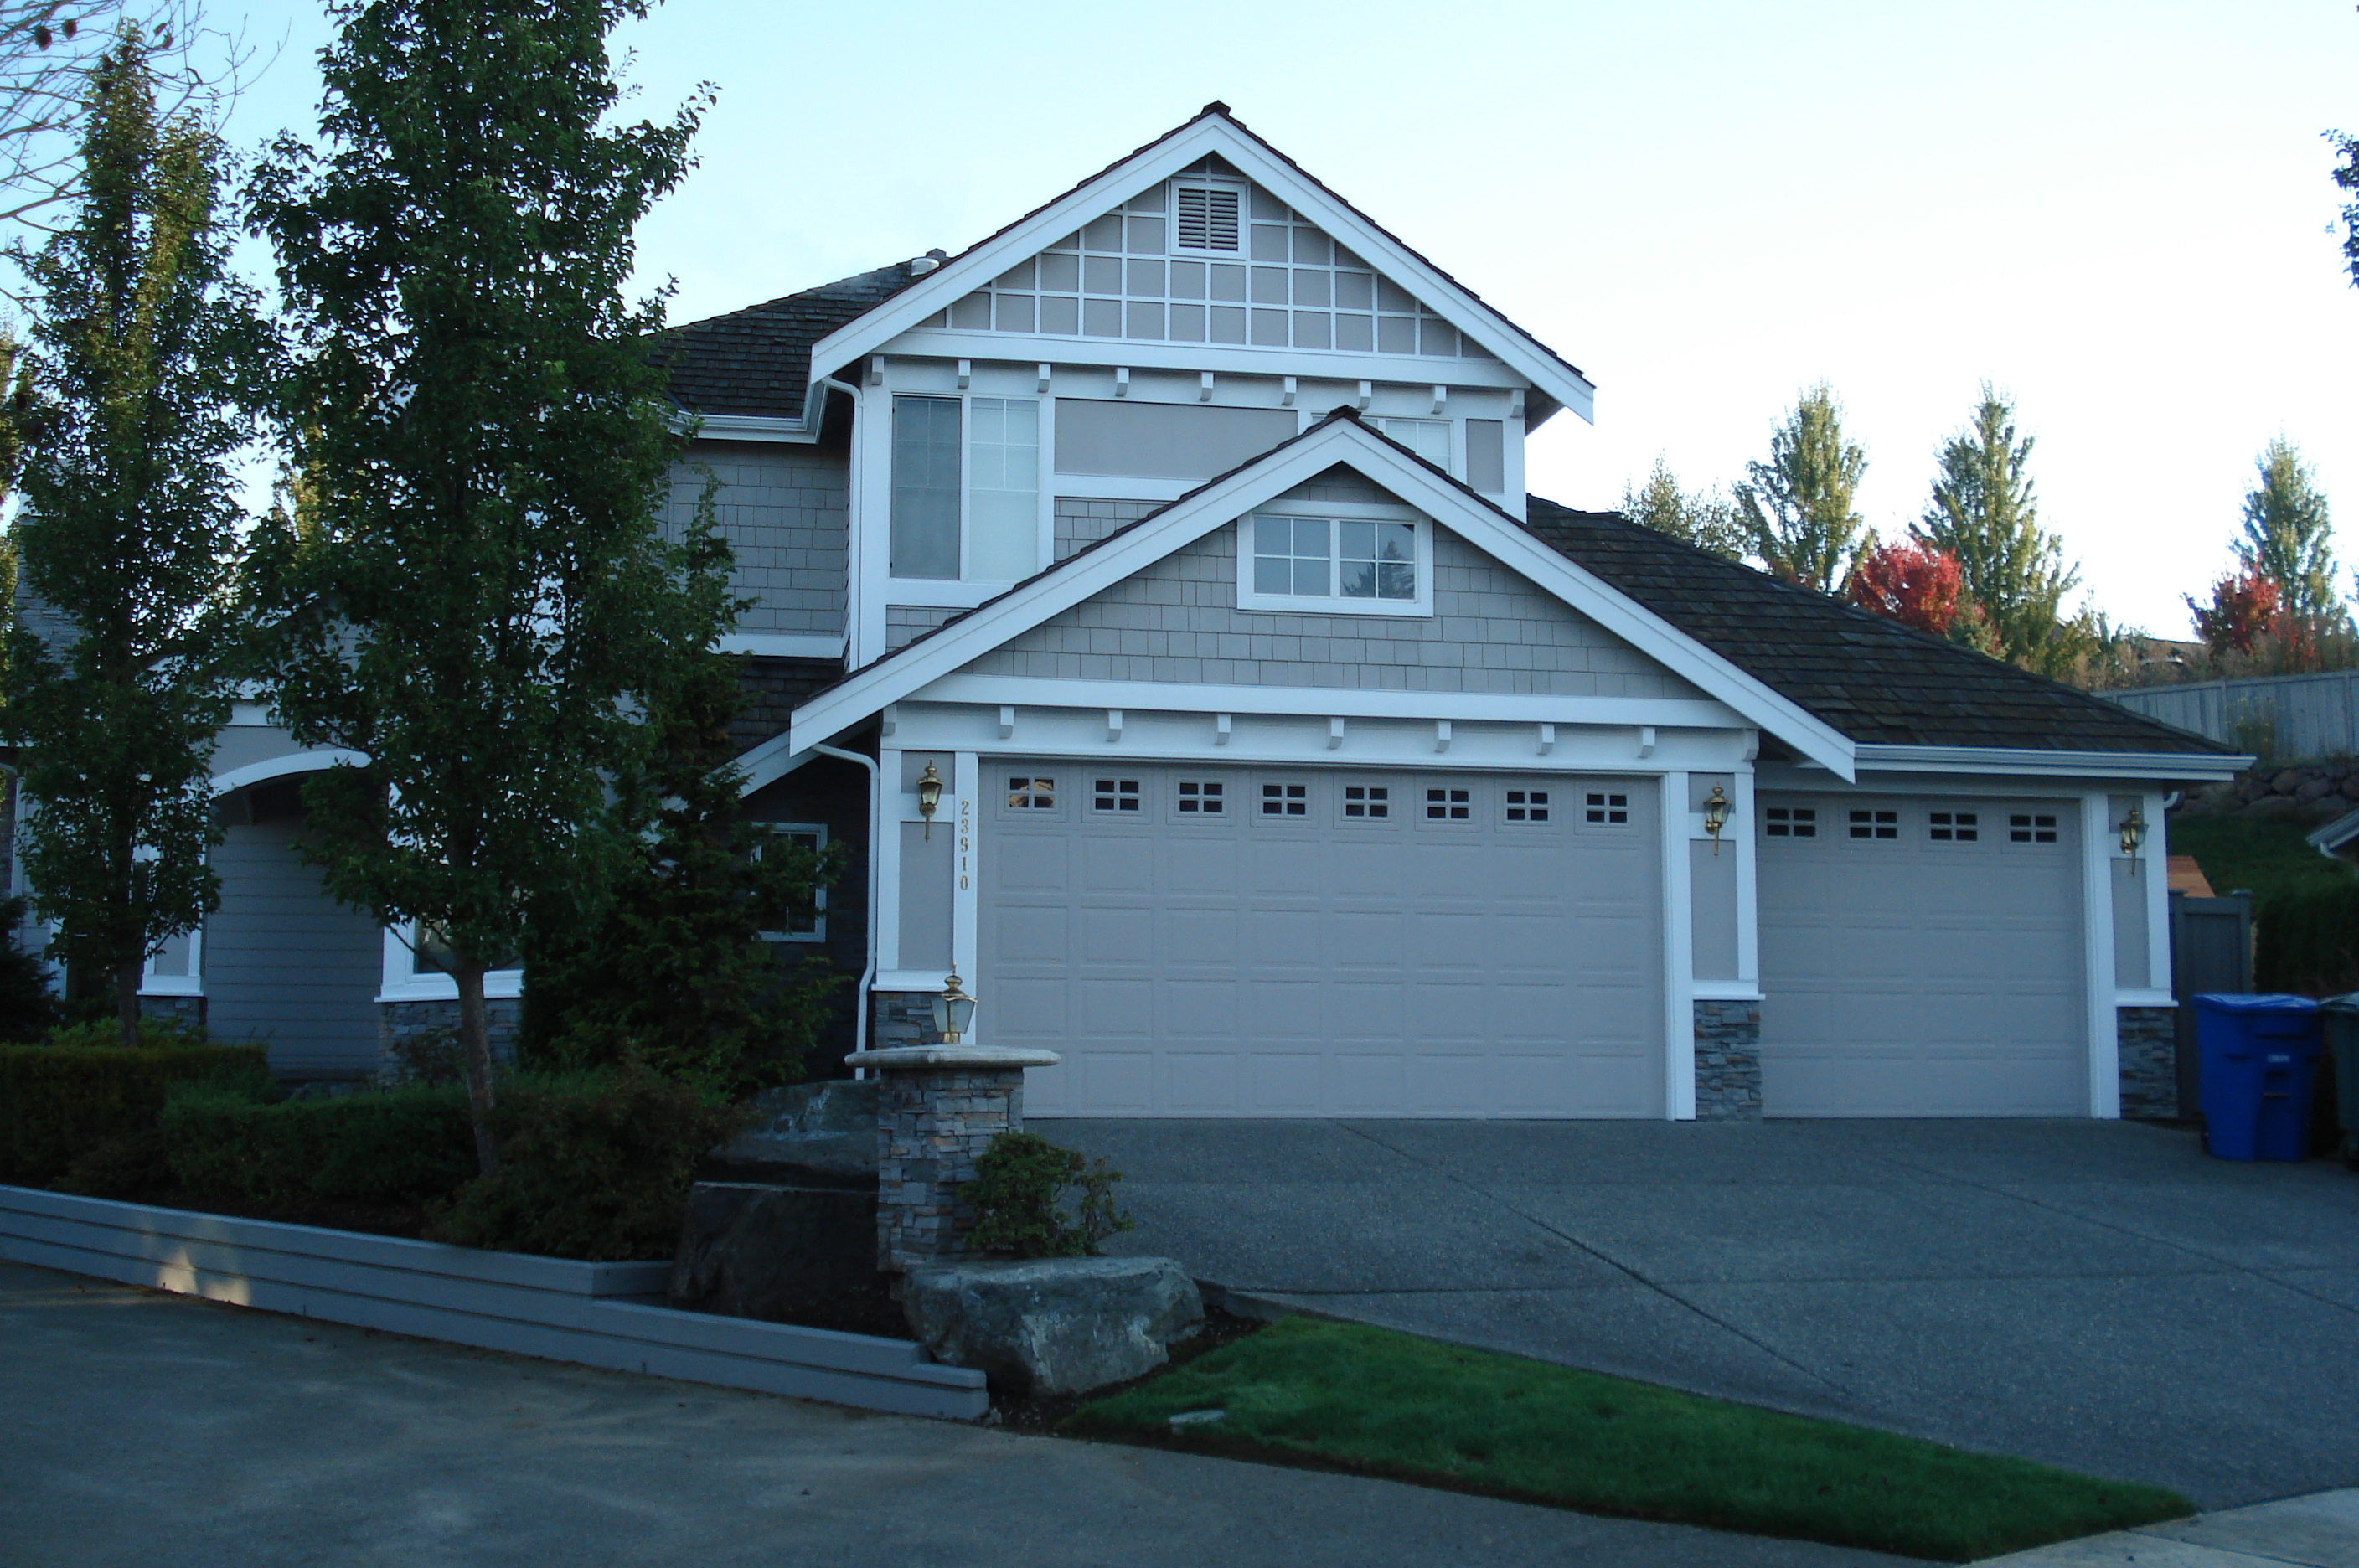 CertaPro Painters the exterior house painting experts in Vernon Hills, IL